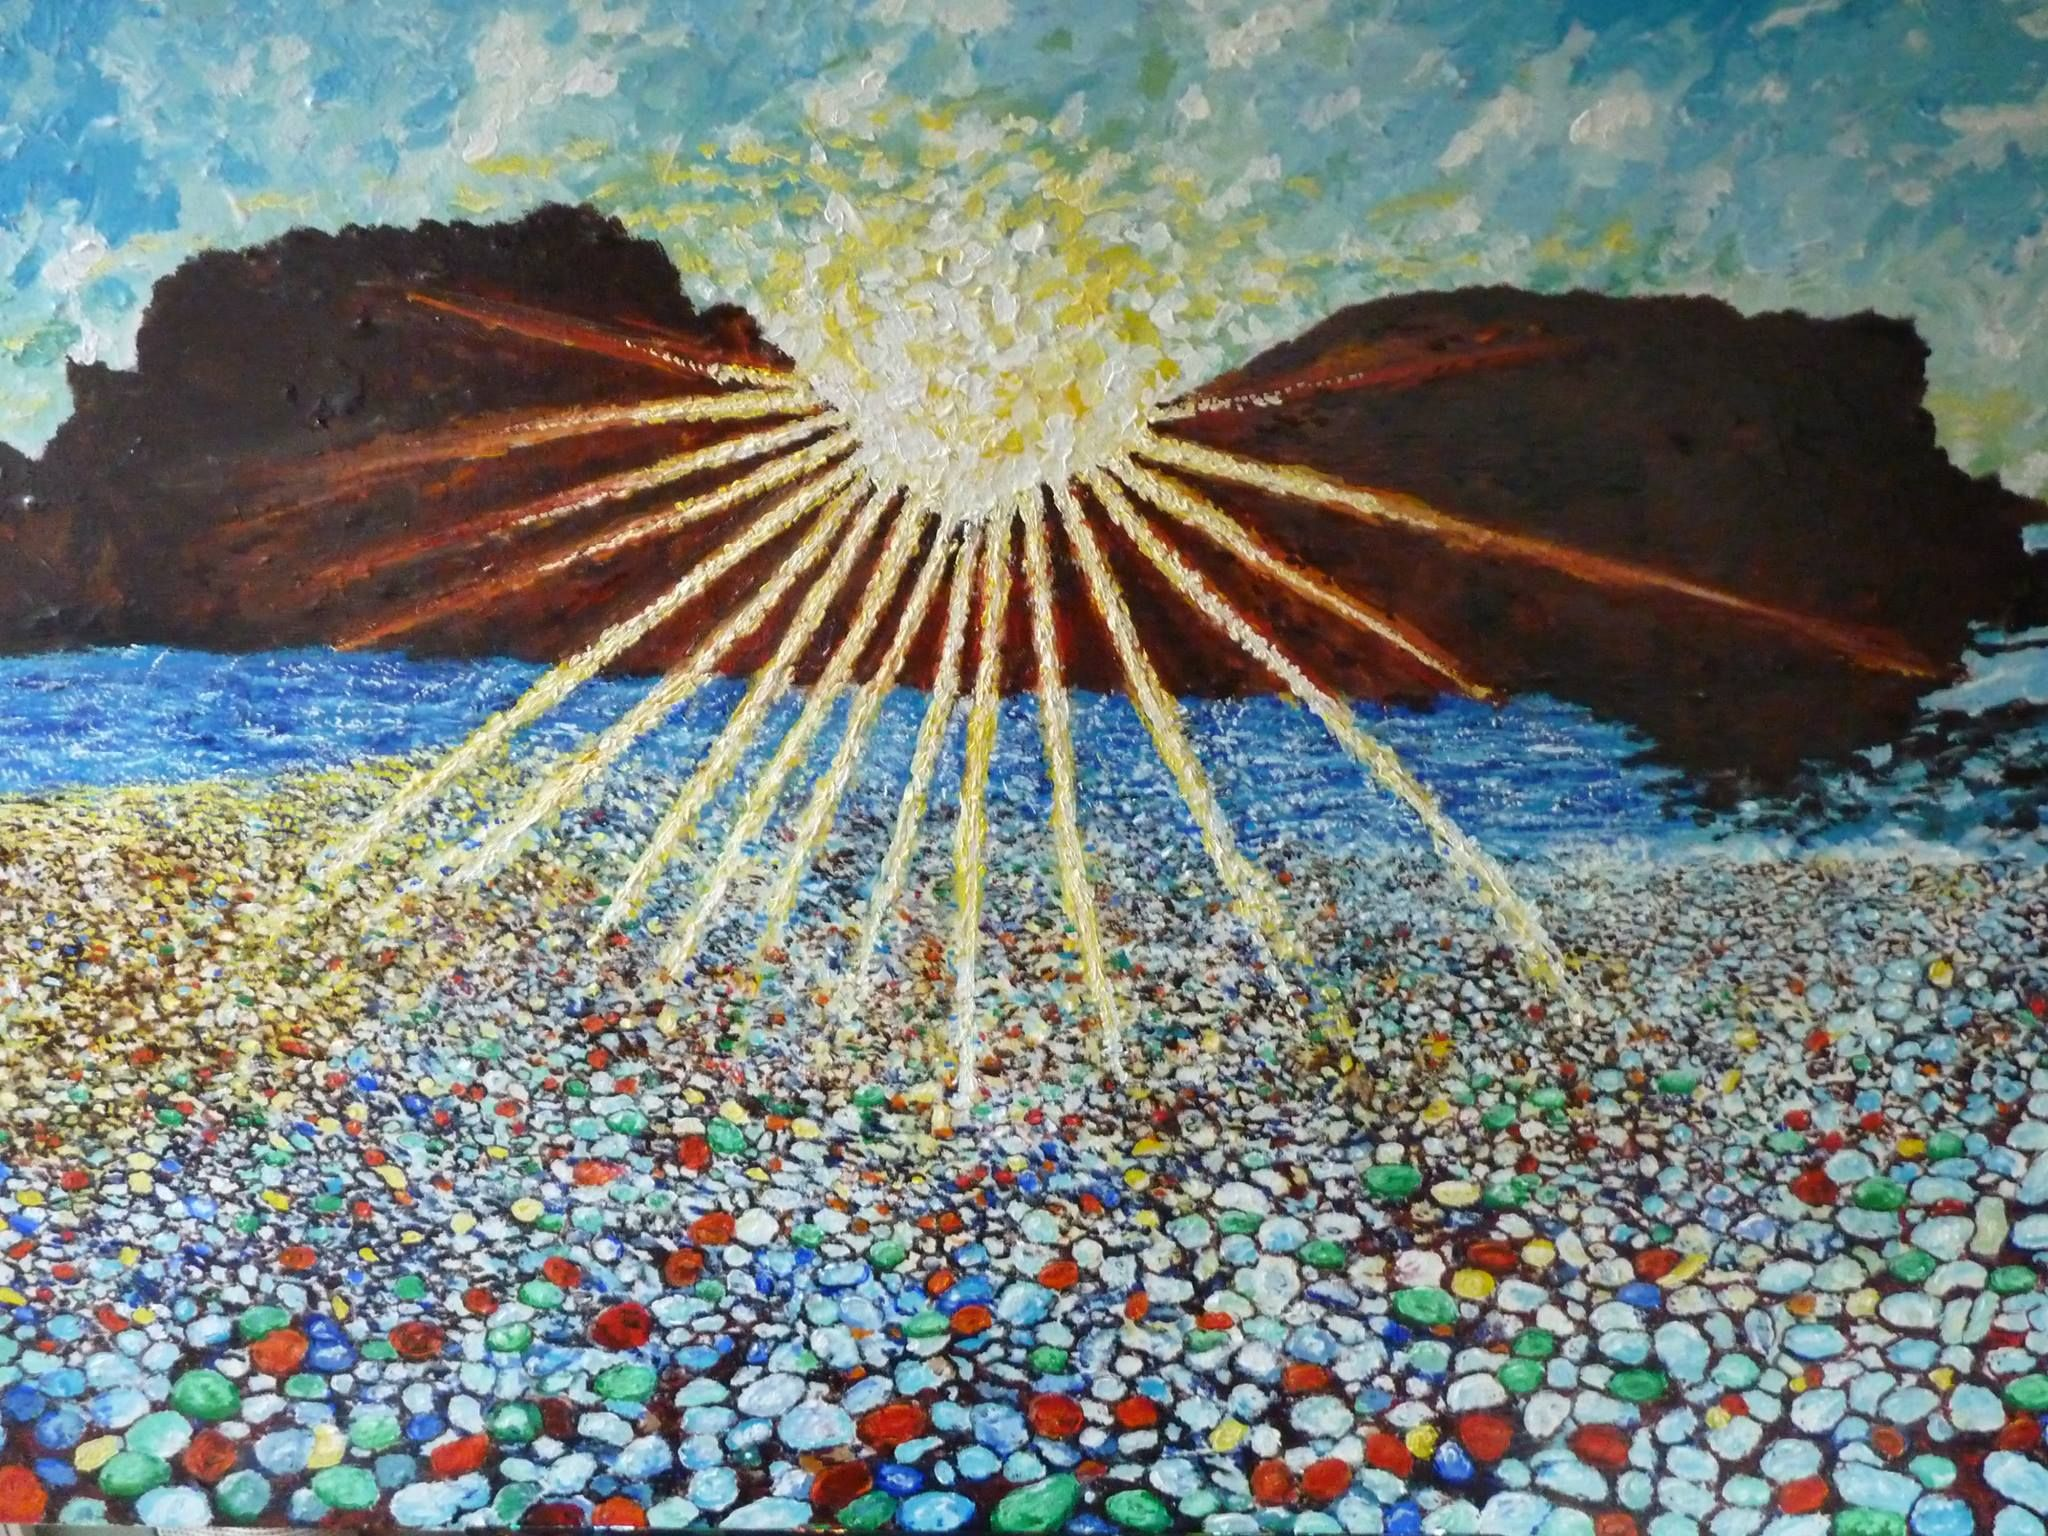 """The completed work """"Glass Beach"""" by Philip Barousse"""